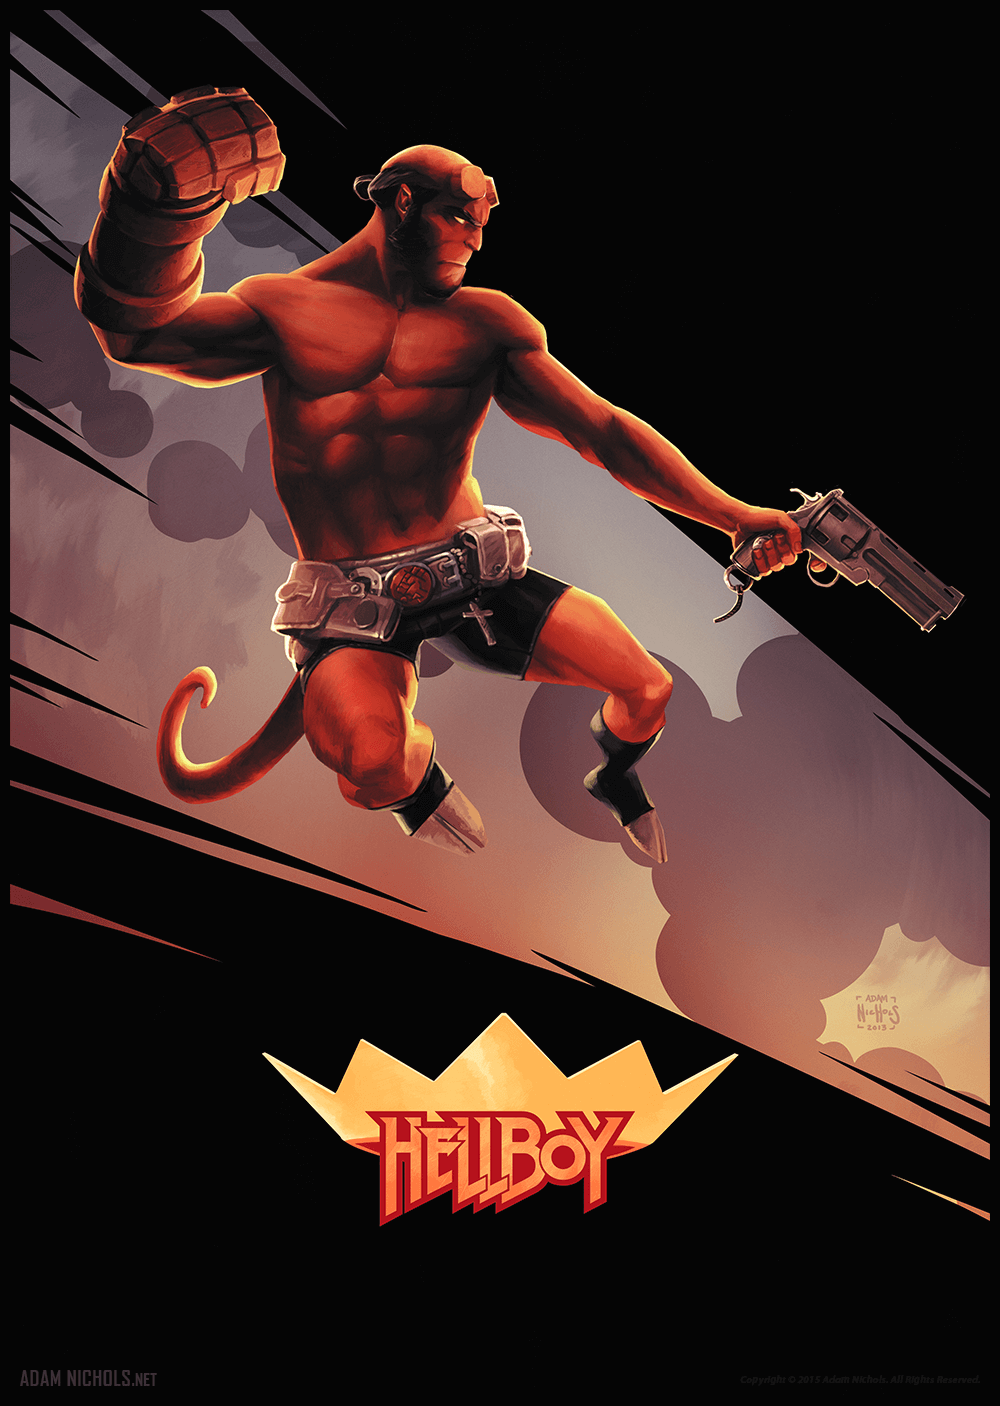 Hellboy - The Science of Evil Artwork